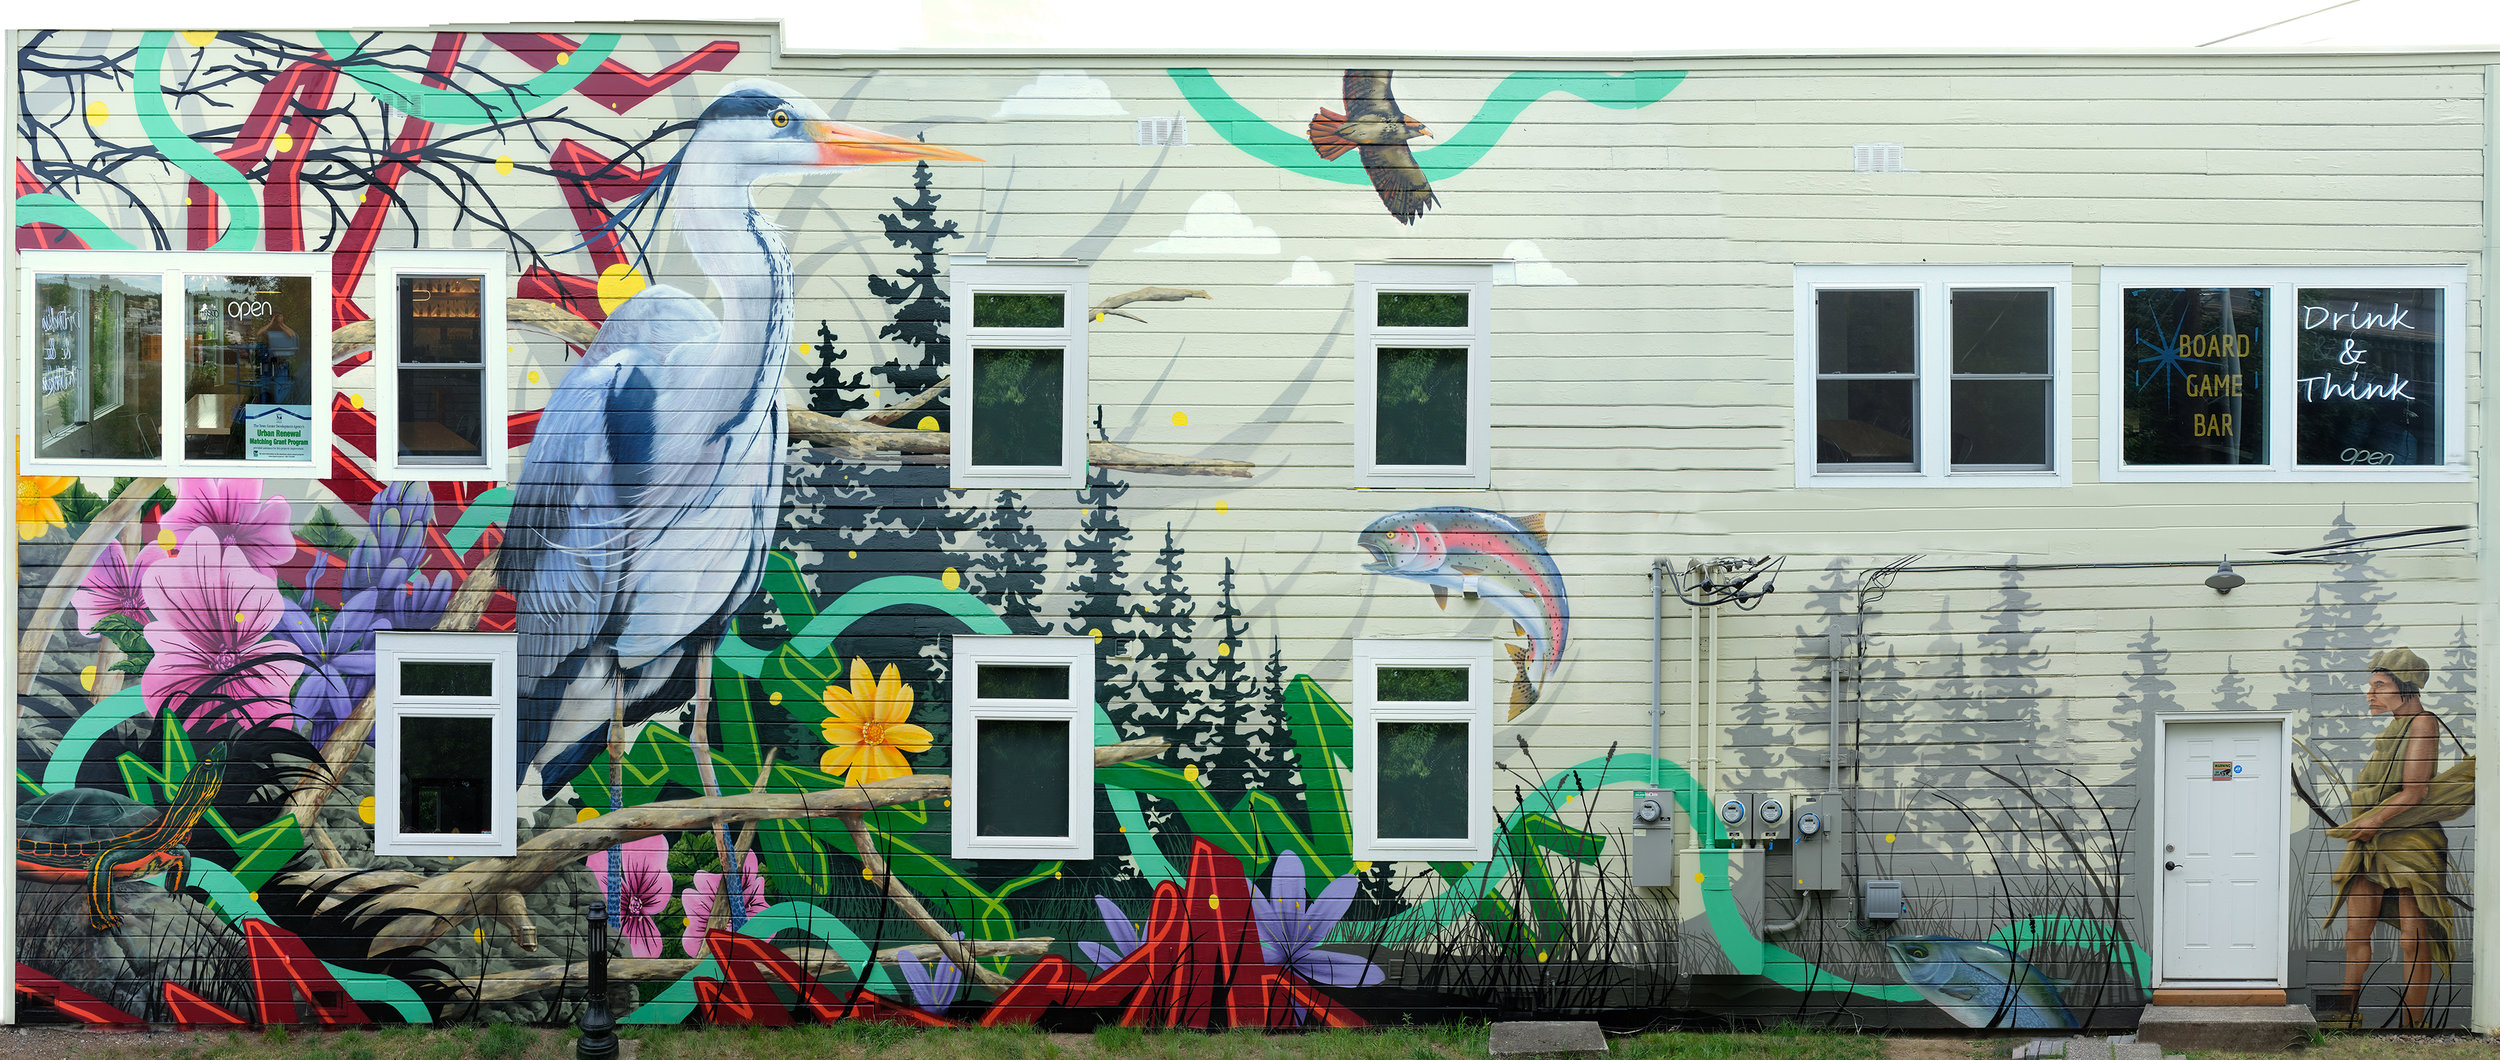 Final Mural by Jeremy Nichols